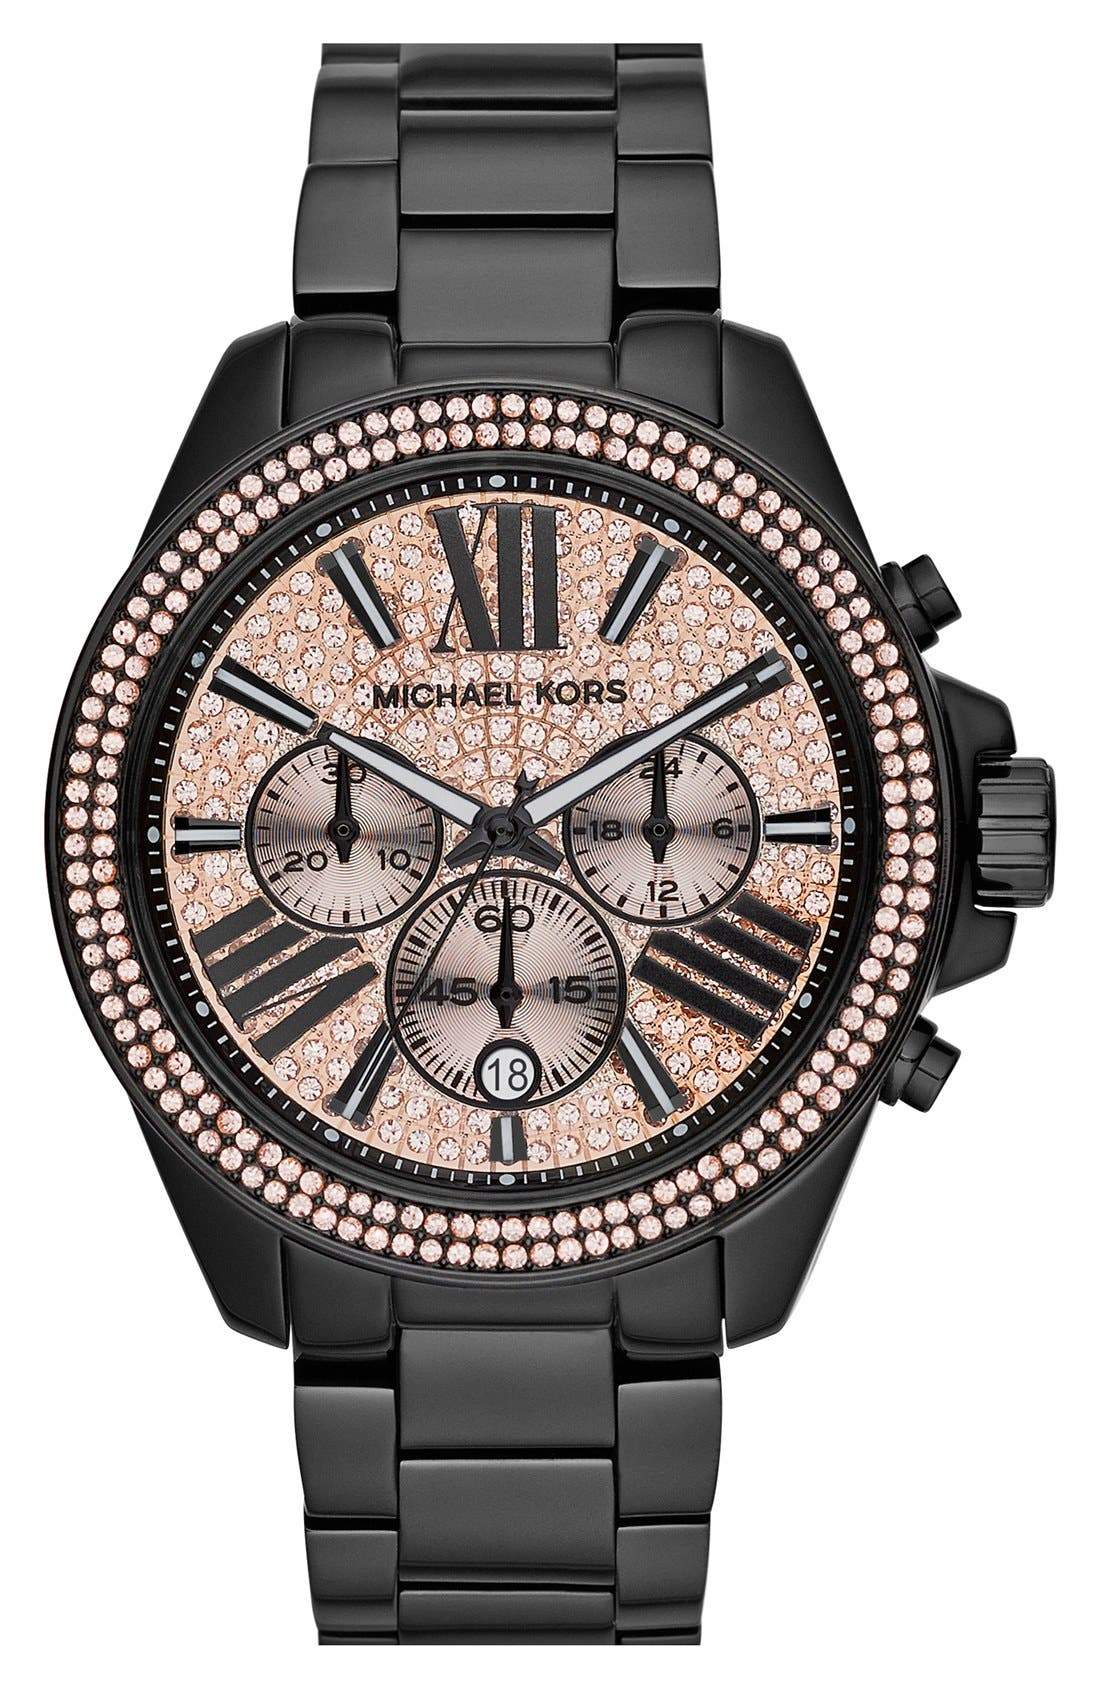 Main Image - Michael Kors 'Wren' Pavé Dial Chronograph Bracelet Watch, 42mm